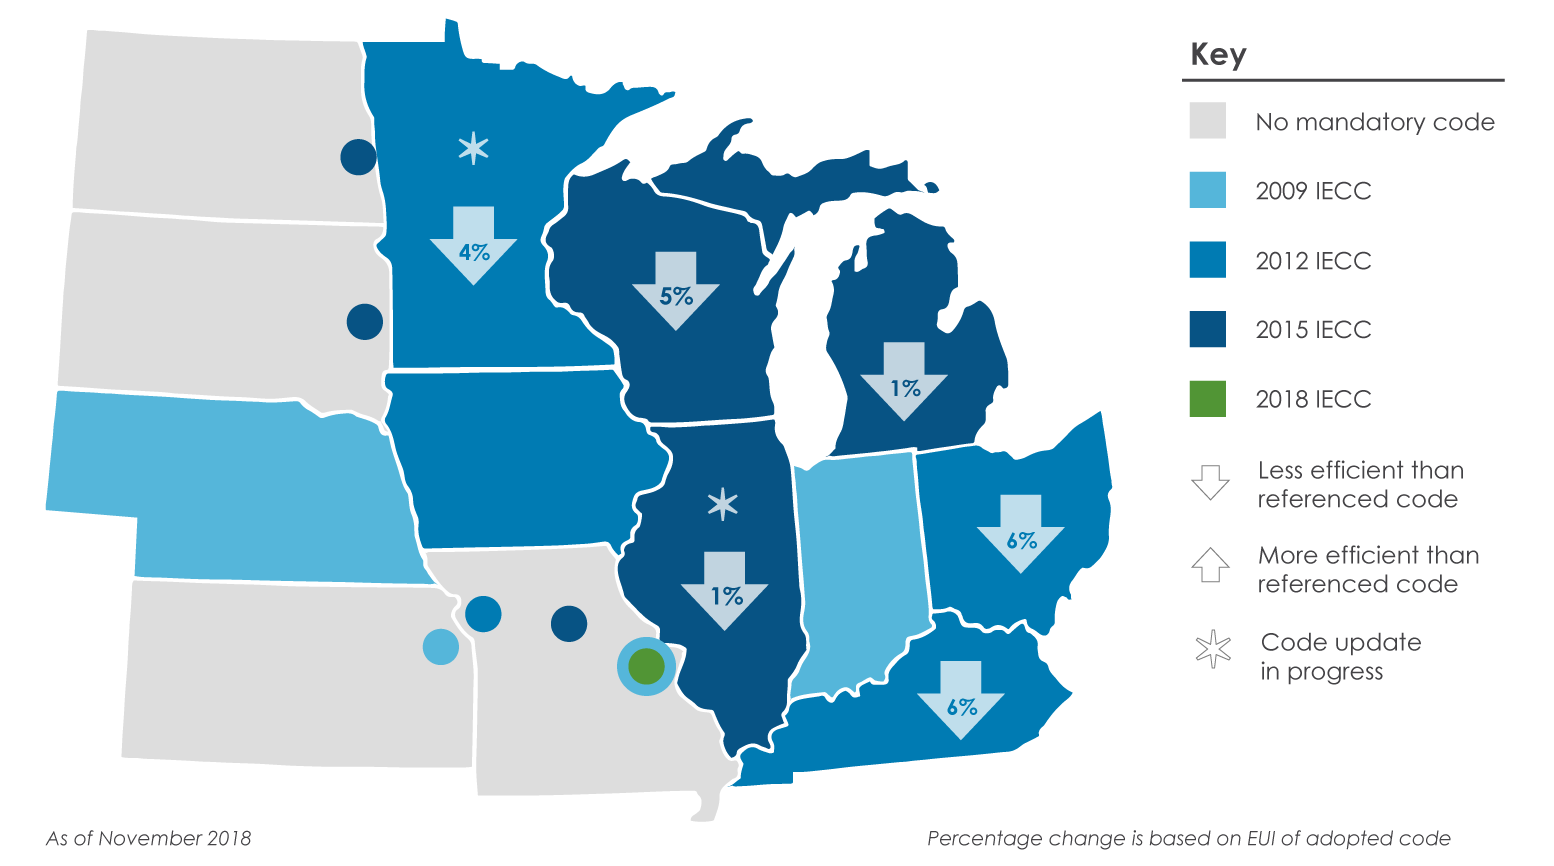 map indicating commercial building energy code level in midwest states